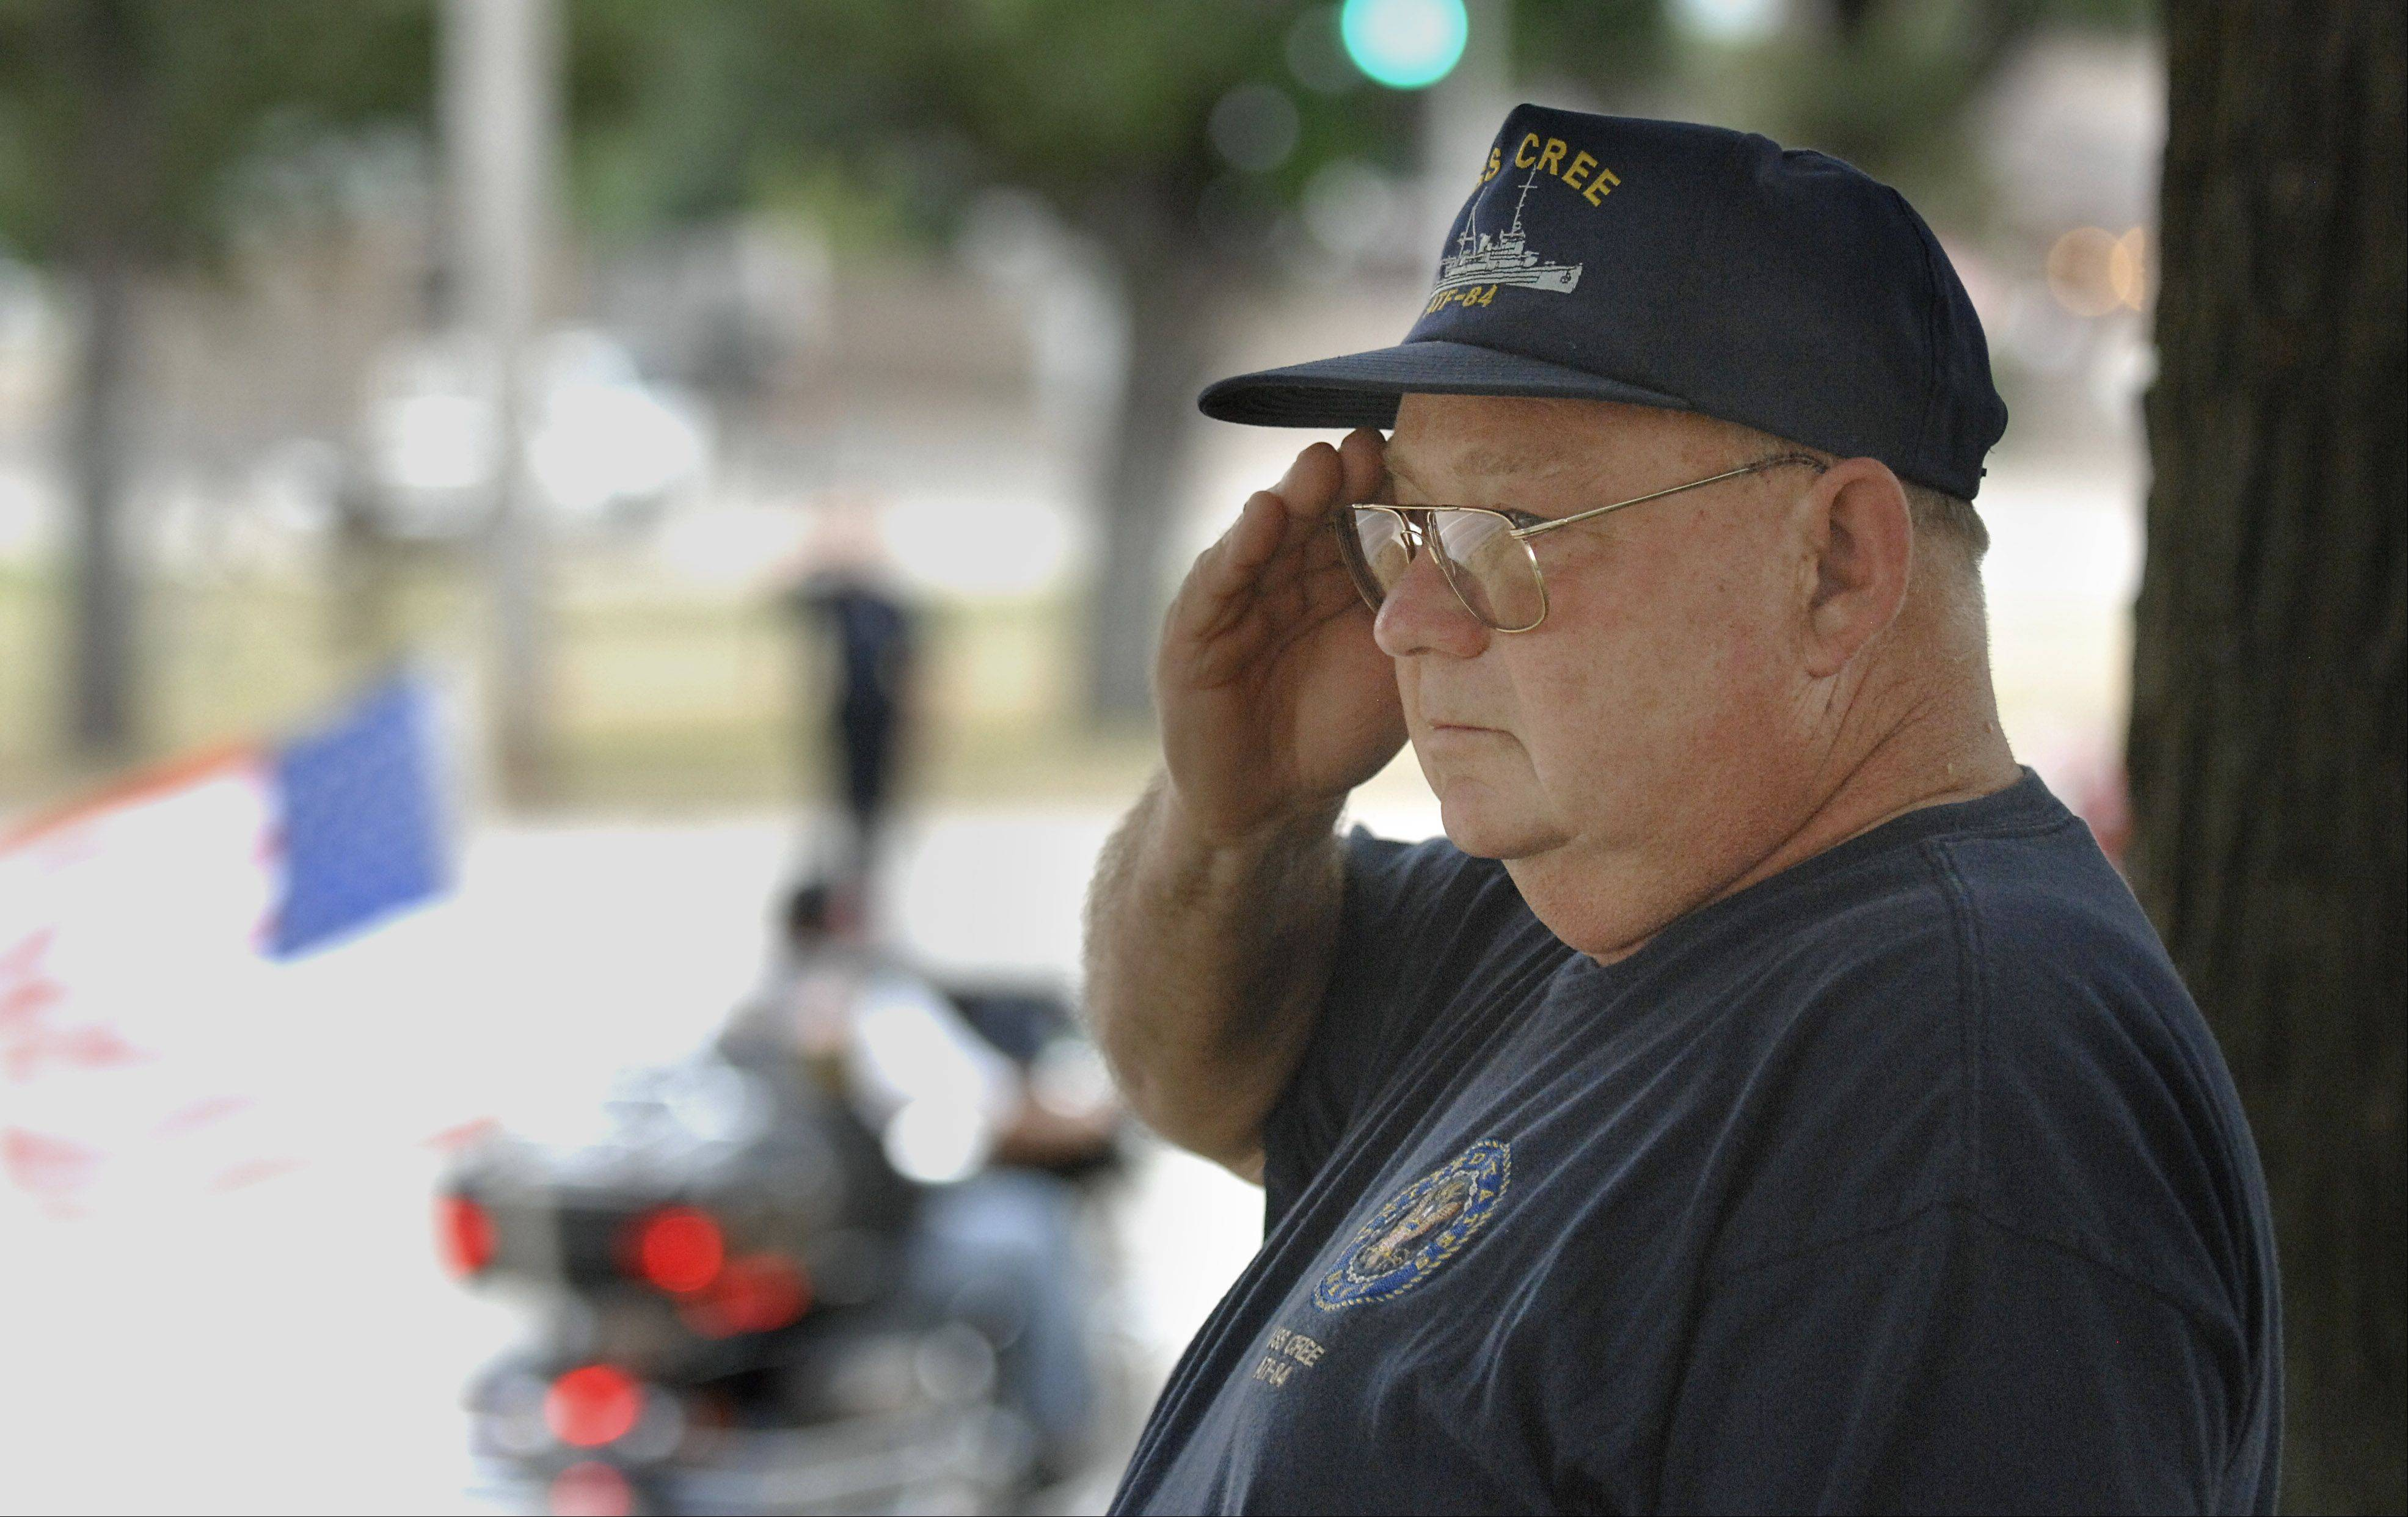 "Bill Keith of Crystal Lake salutes as the hearse of U.S. Navy Petty Officer John Larimer is escorted down Terra Cotta Avenue on the way to Davenport Family Funeral Home Thursday. Keith, a U.S. Navy Vietnam veteran, knew Larimer as a Boy Scout in Troop 168. The onetime assistant scoutmaster remembers Larimer as ""Just a good kid, full of life."""